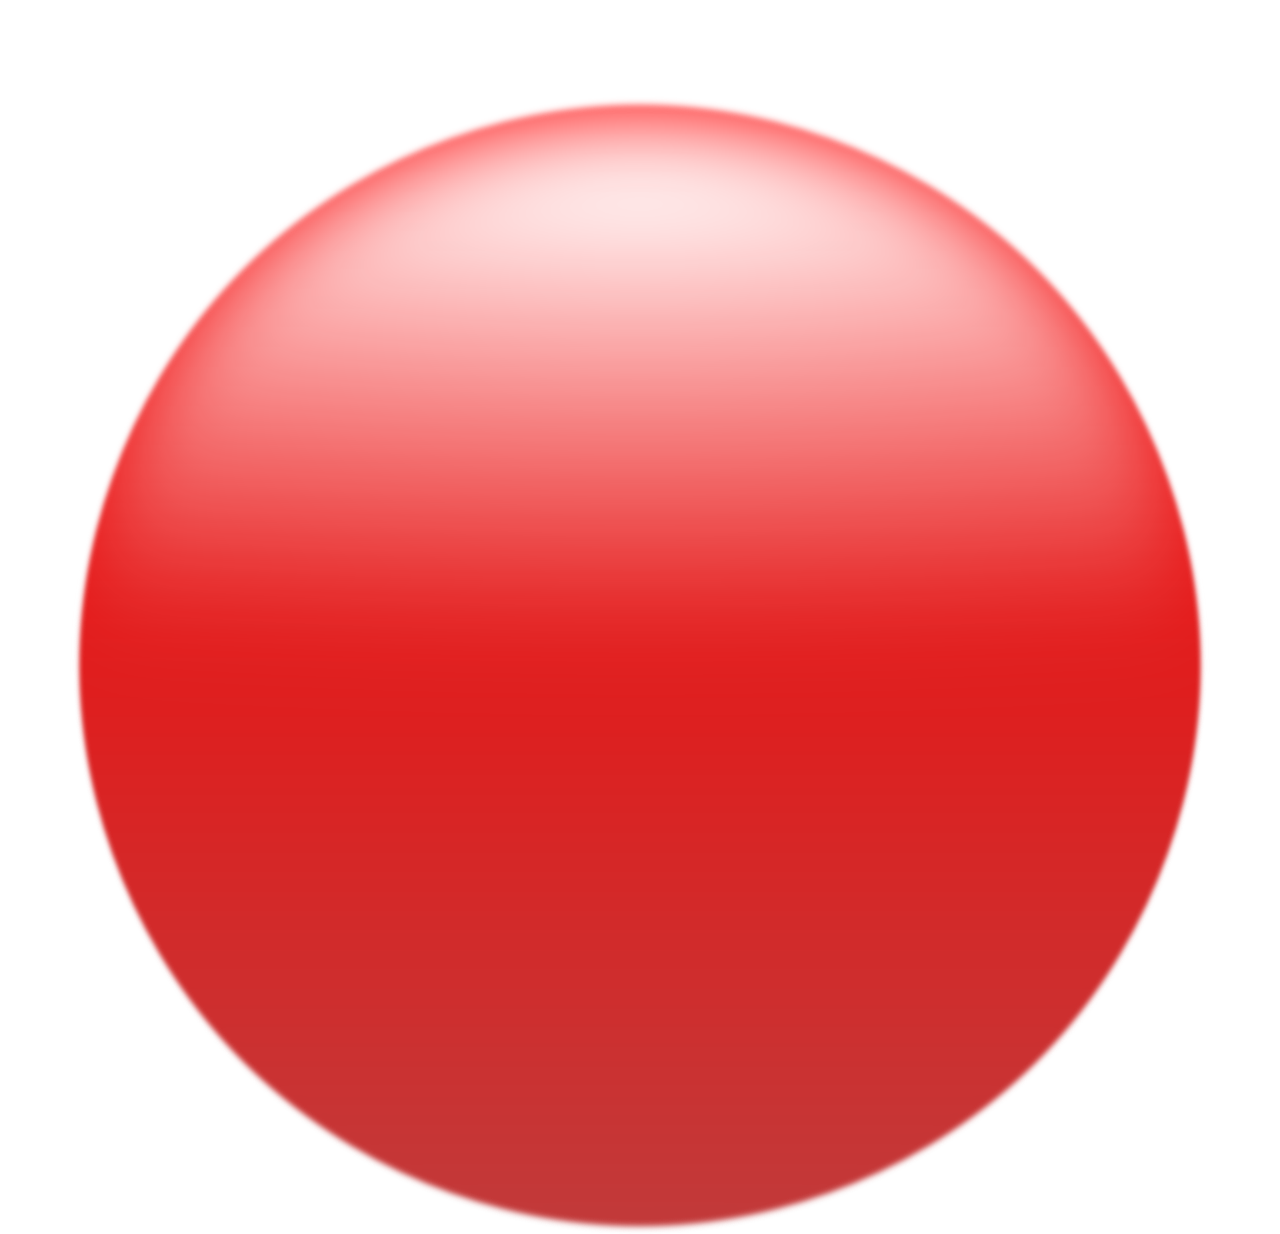 Balls clipart rubber ball. The red theory of